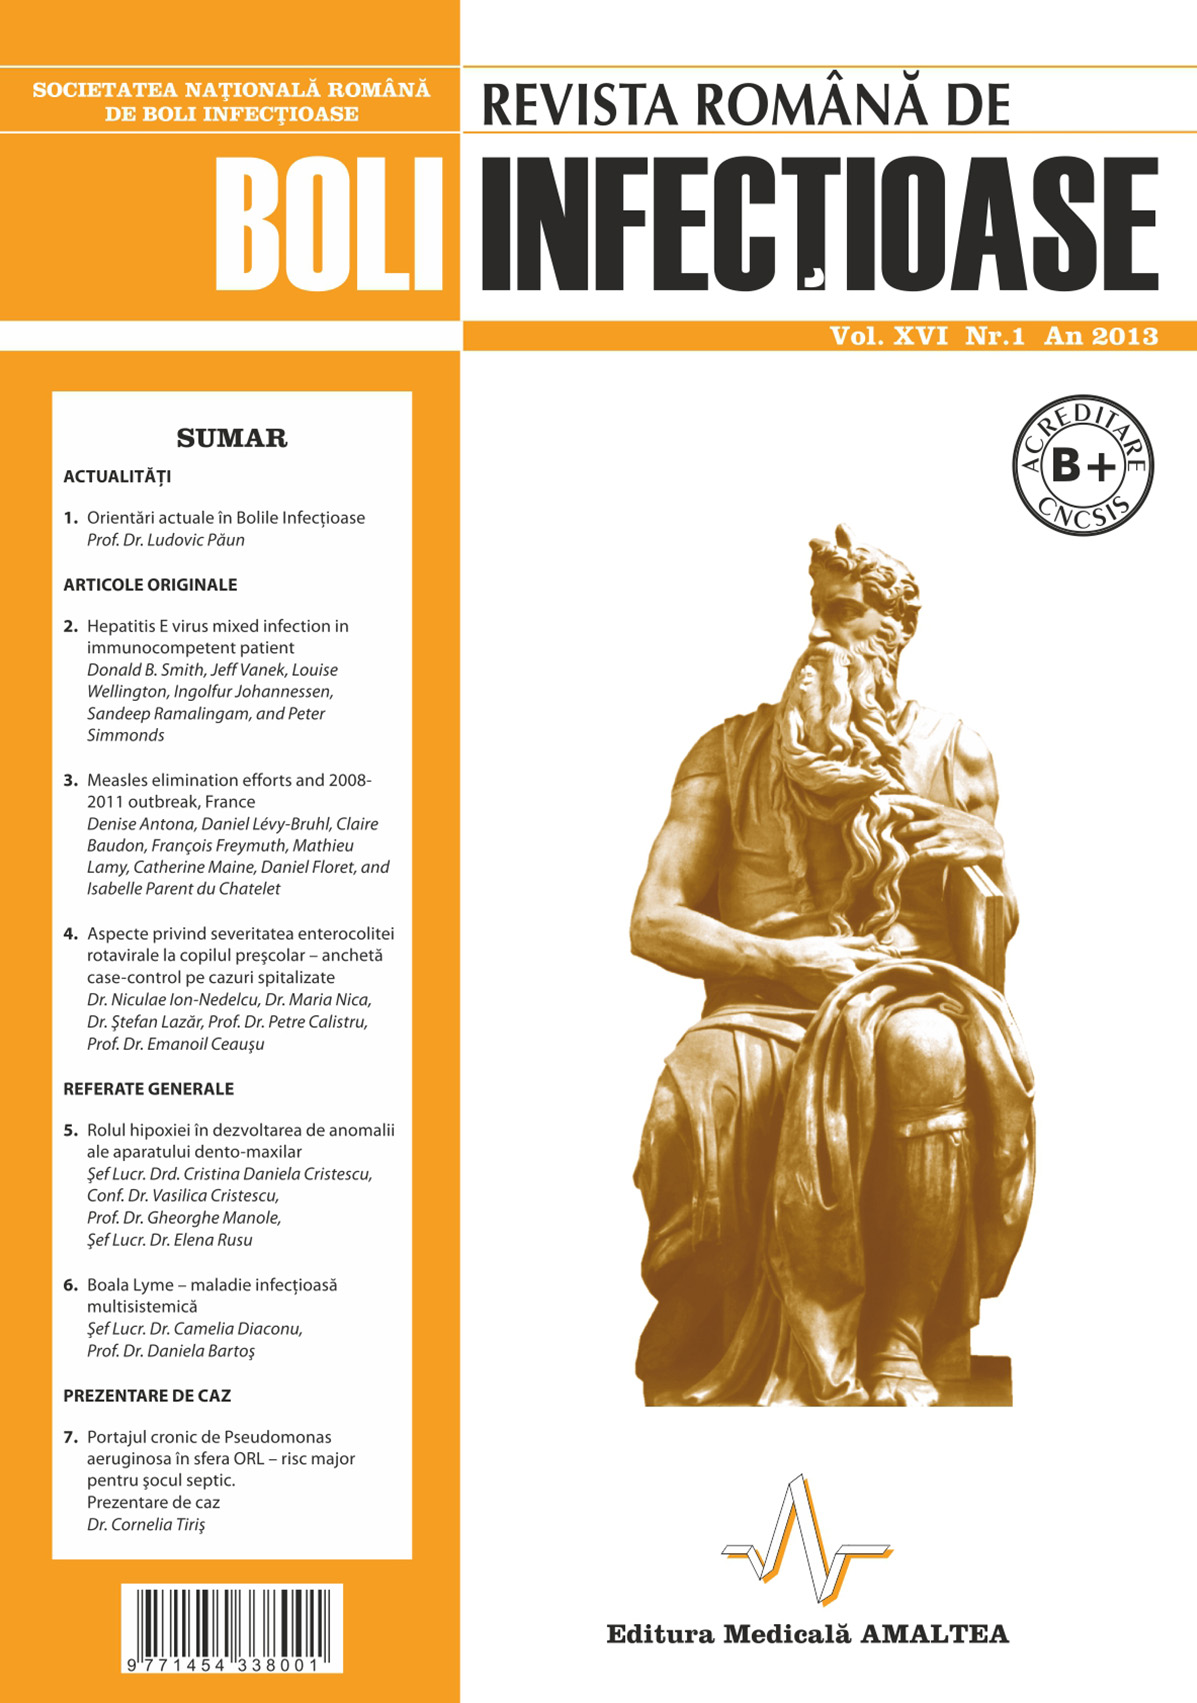 Revista Romana de Boli Infectioase | Vol. XVI, No. 1, 2013